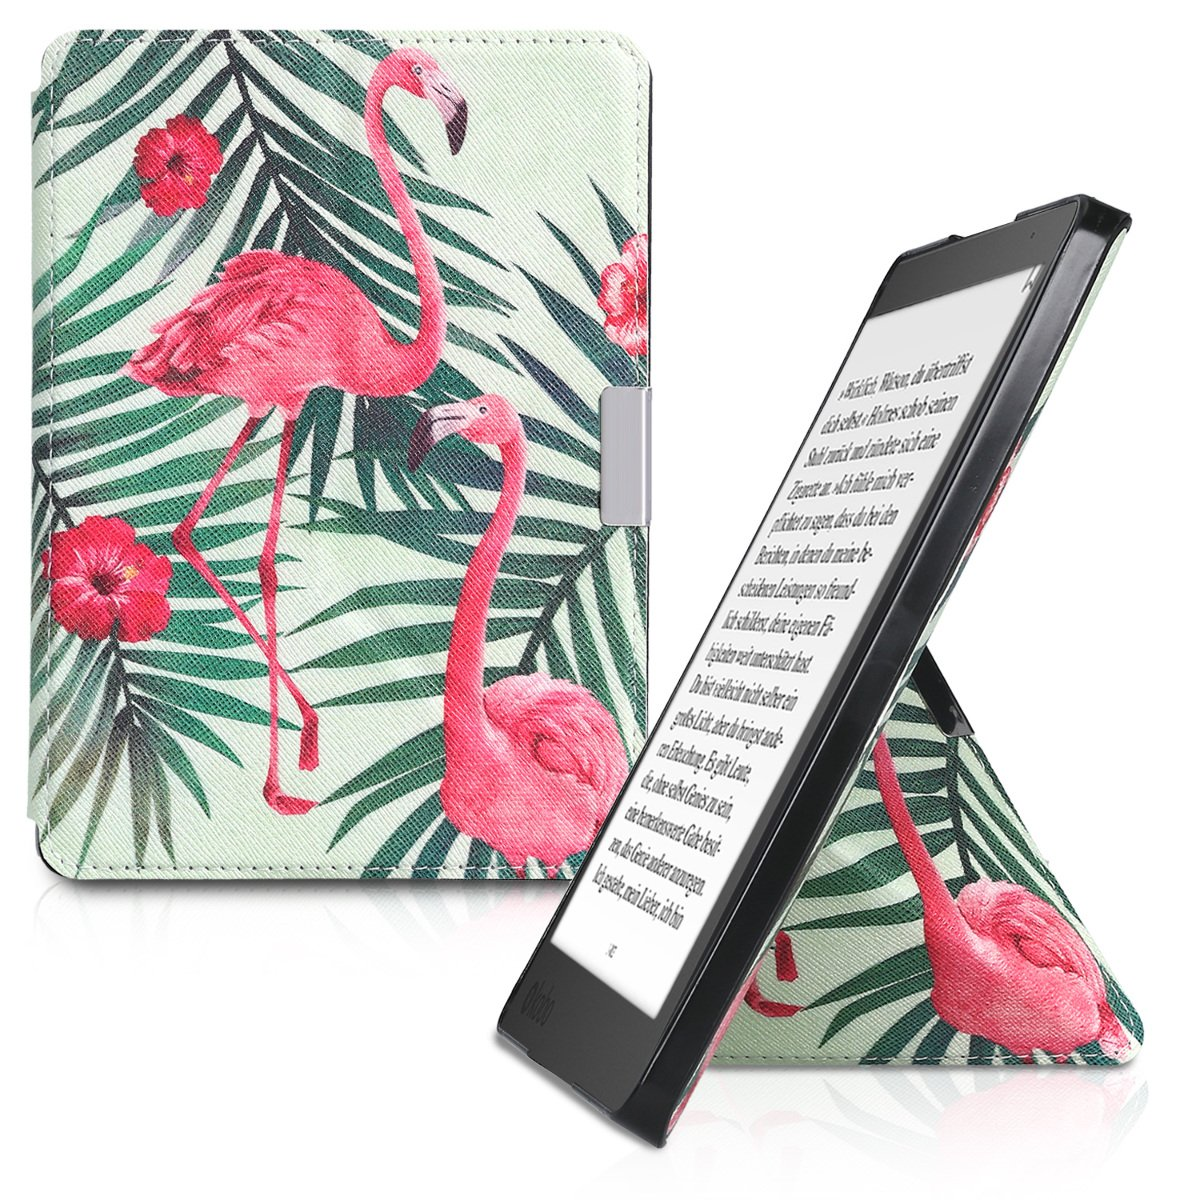 kwmobile Origami Case for Kobo Aura Edition 2 - Ultra Slim Fit Premium PU Leather Cover with Stand - Light Pink Green Light Green